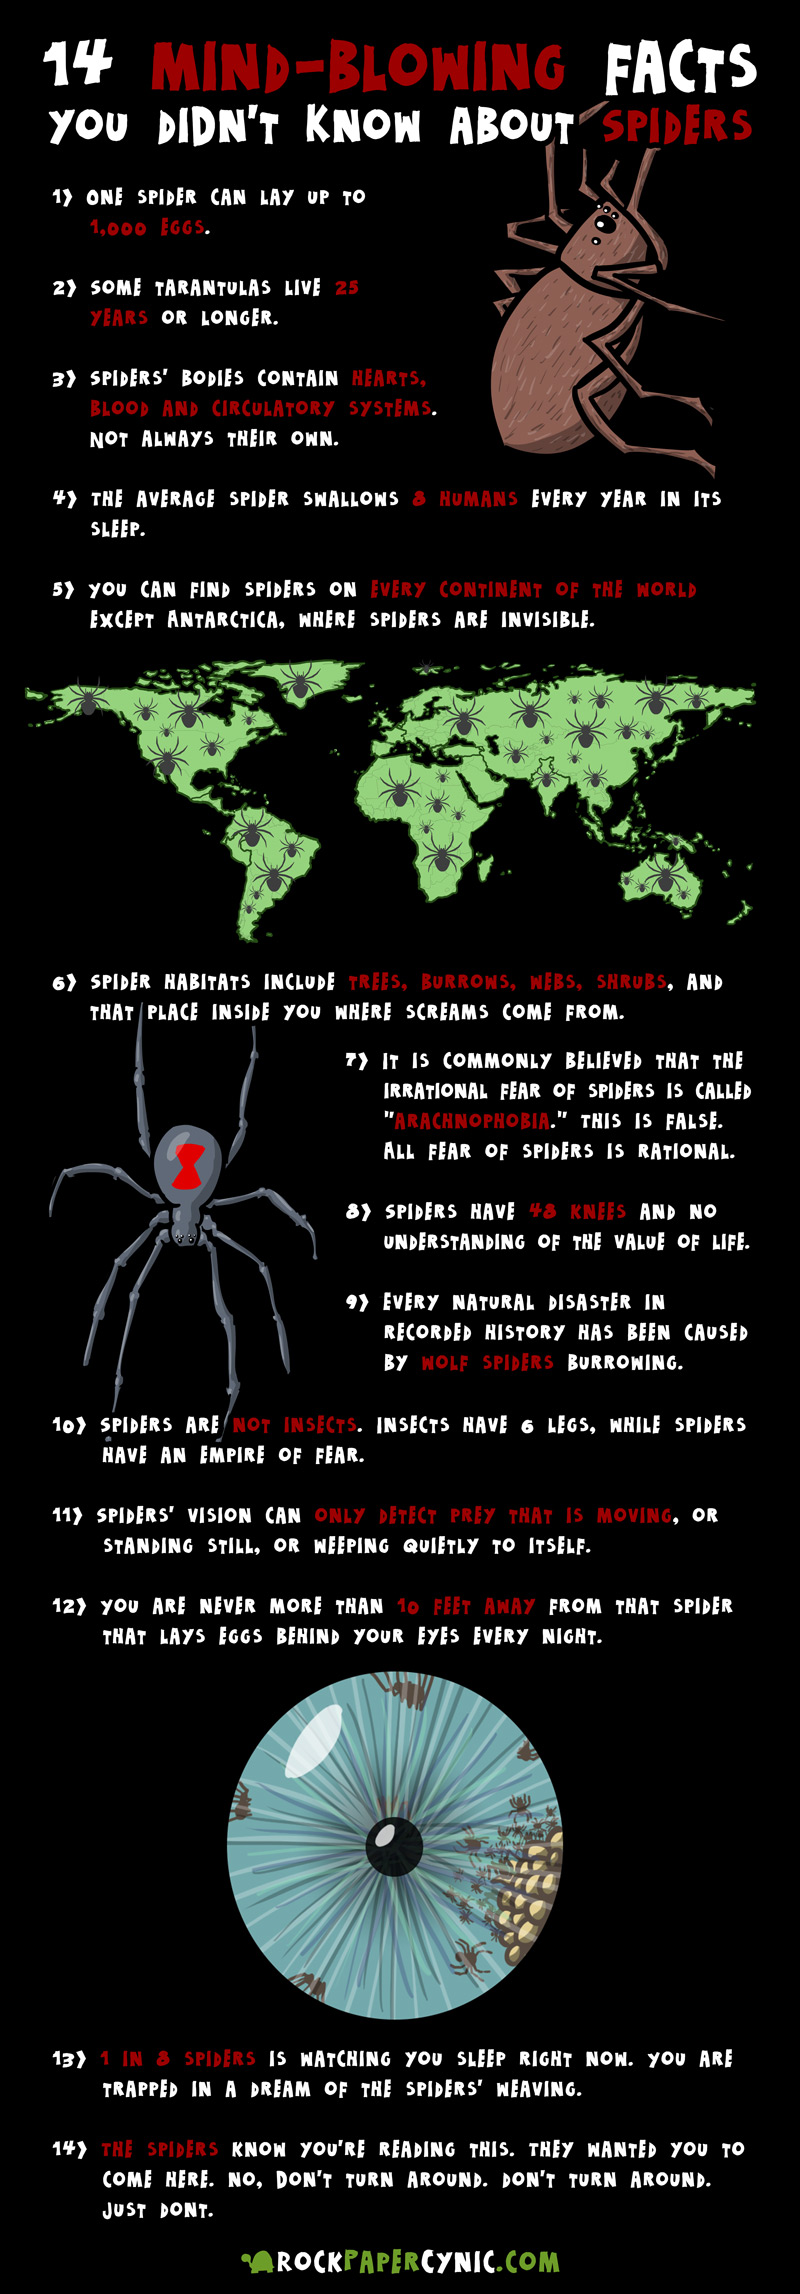 we share crazy, wacky, and little-known facts about spiders! WOW!